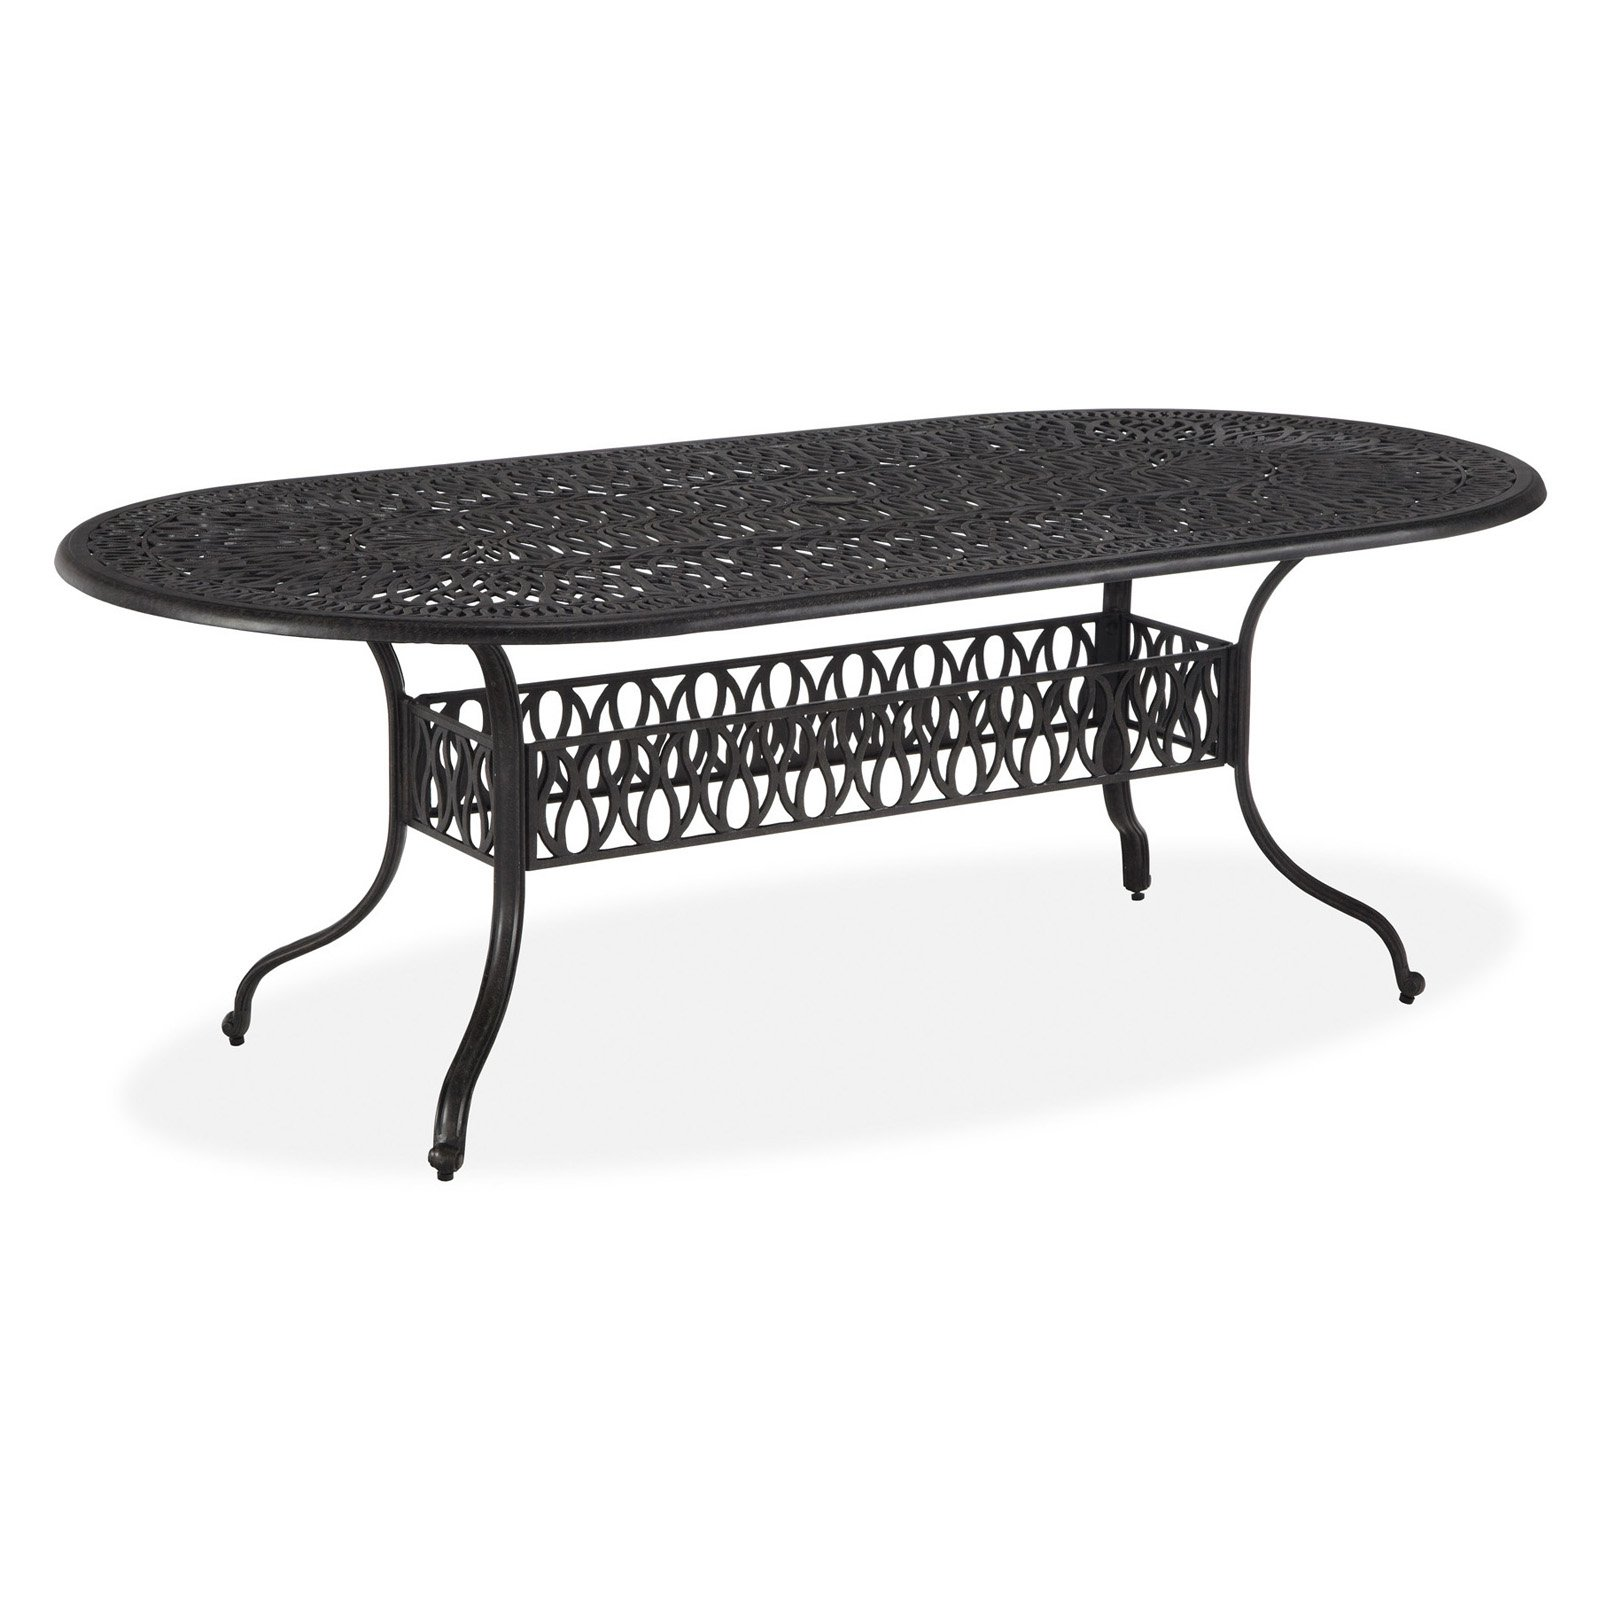 Home Styles Floral Blossom Oval Outdoor Dining Table, Charcoal